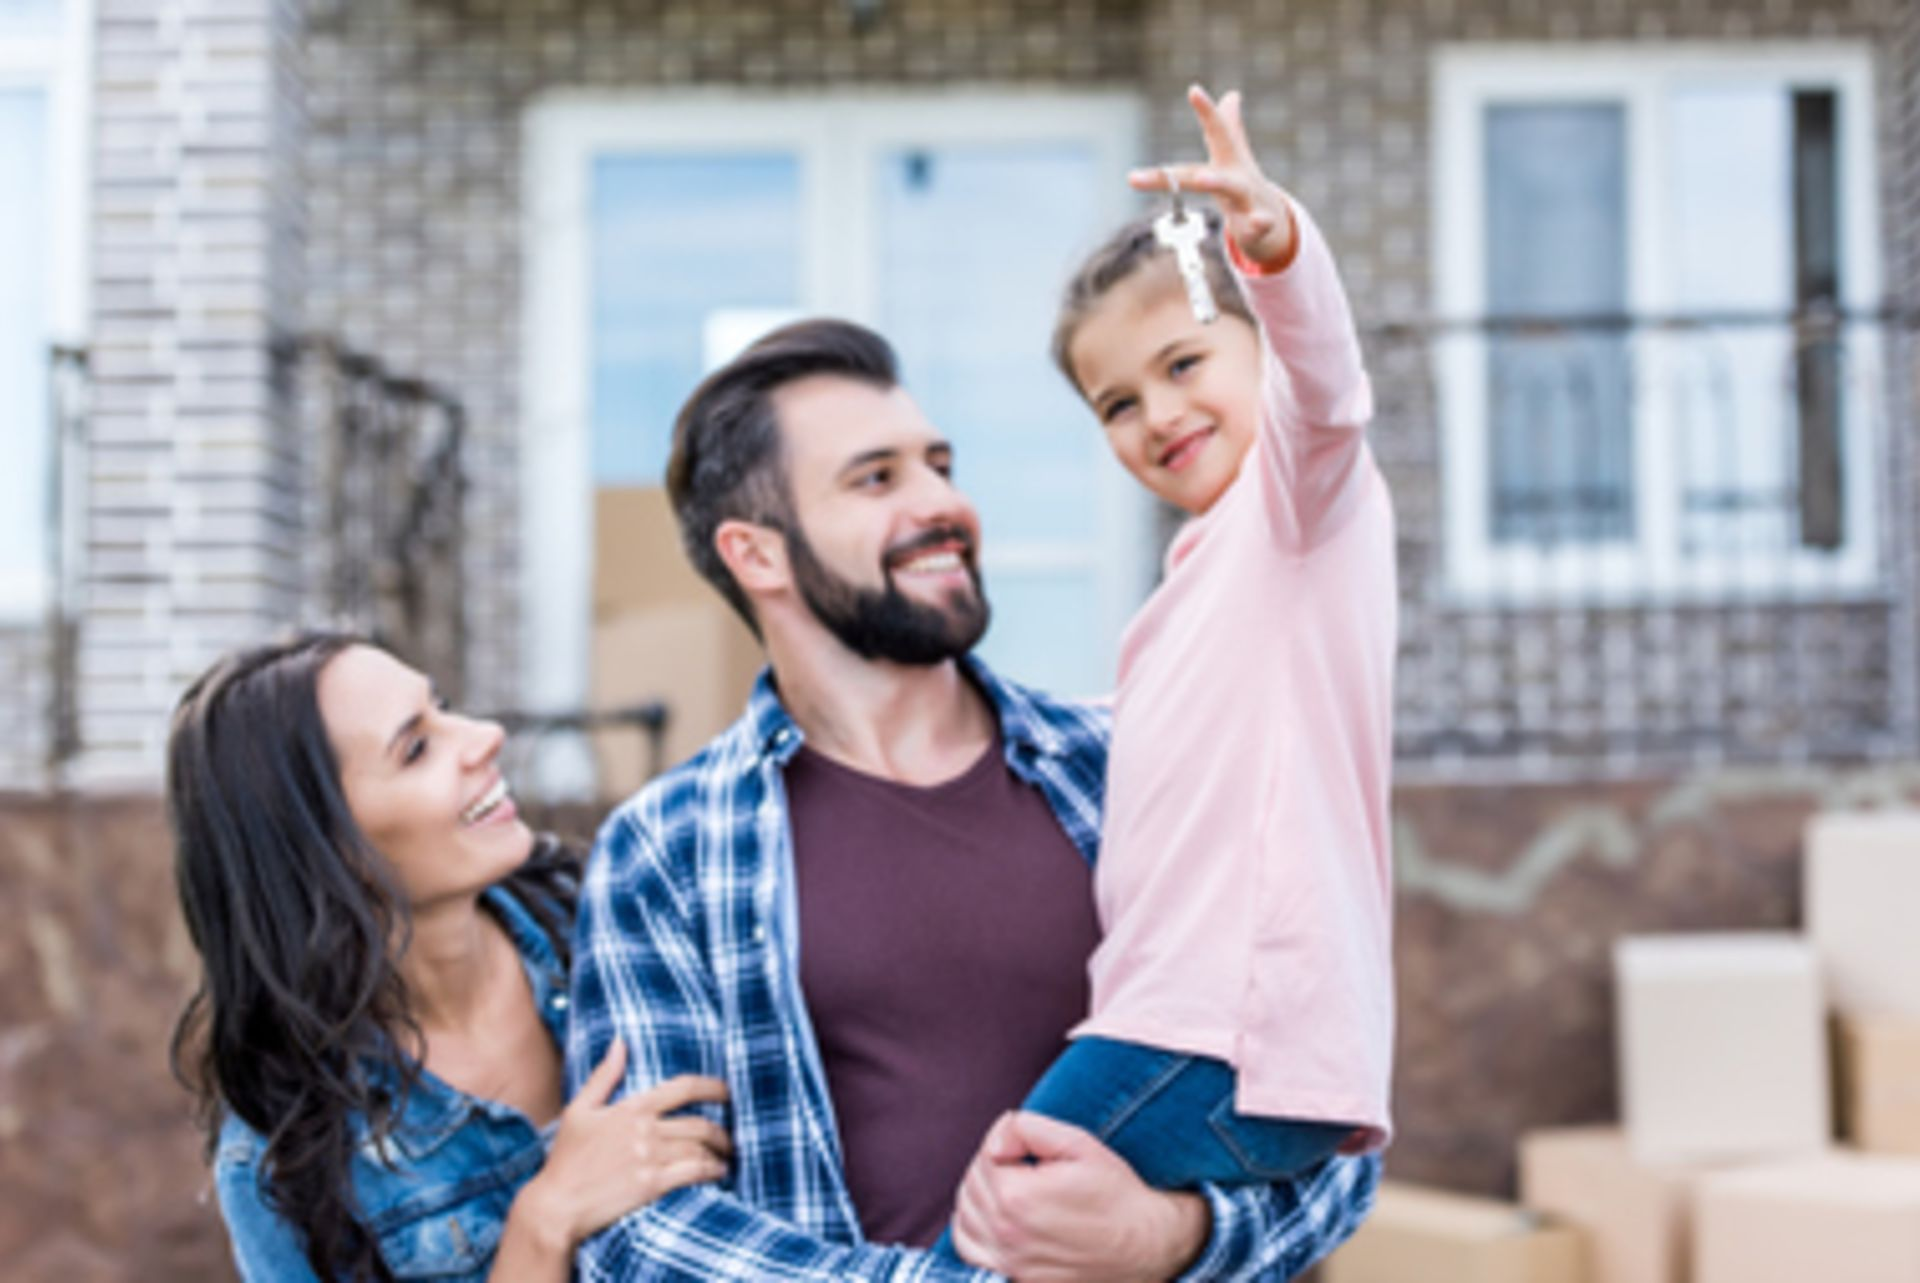 Are You Ready for a New Home? A Guide for Move-Up Buyers